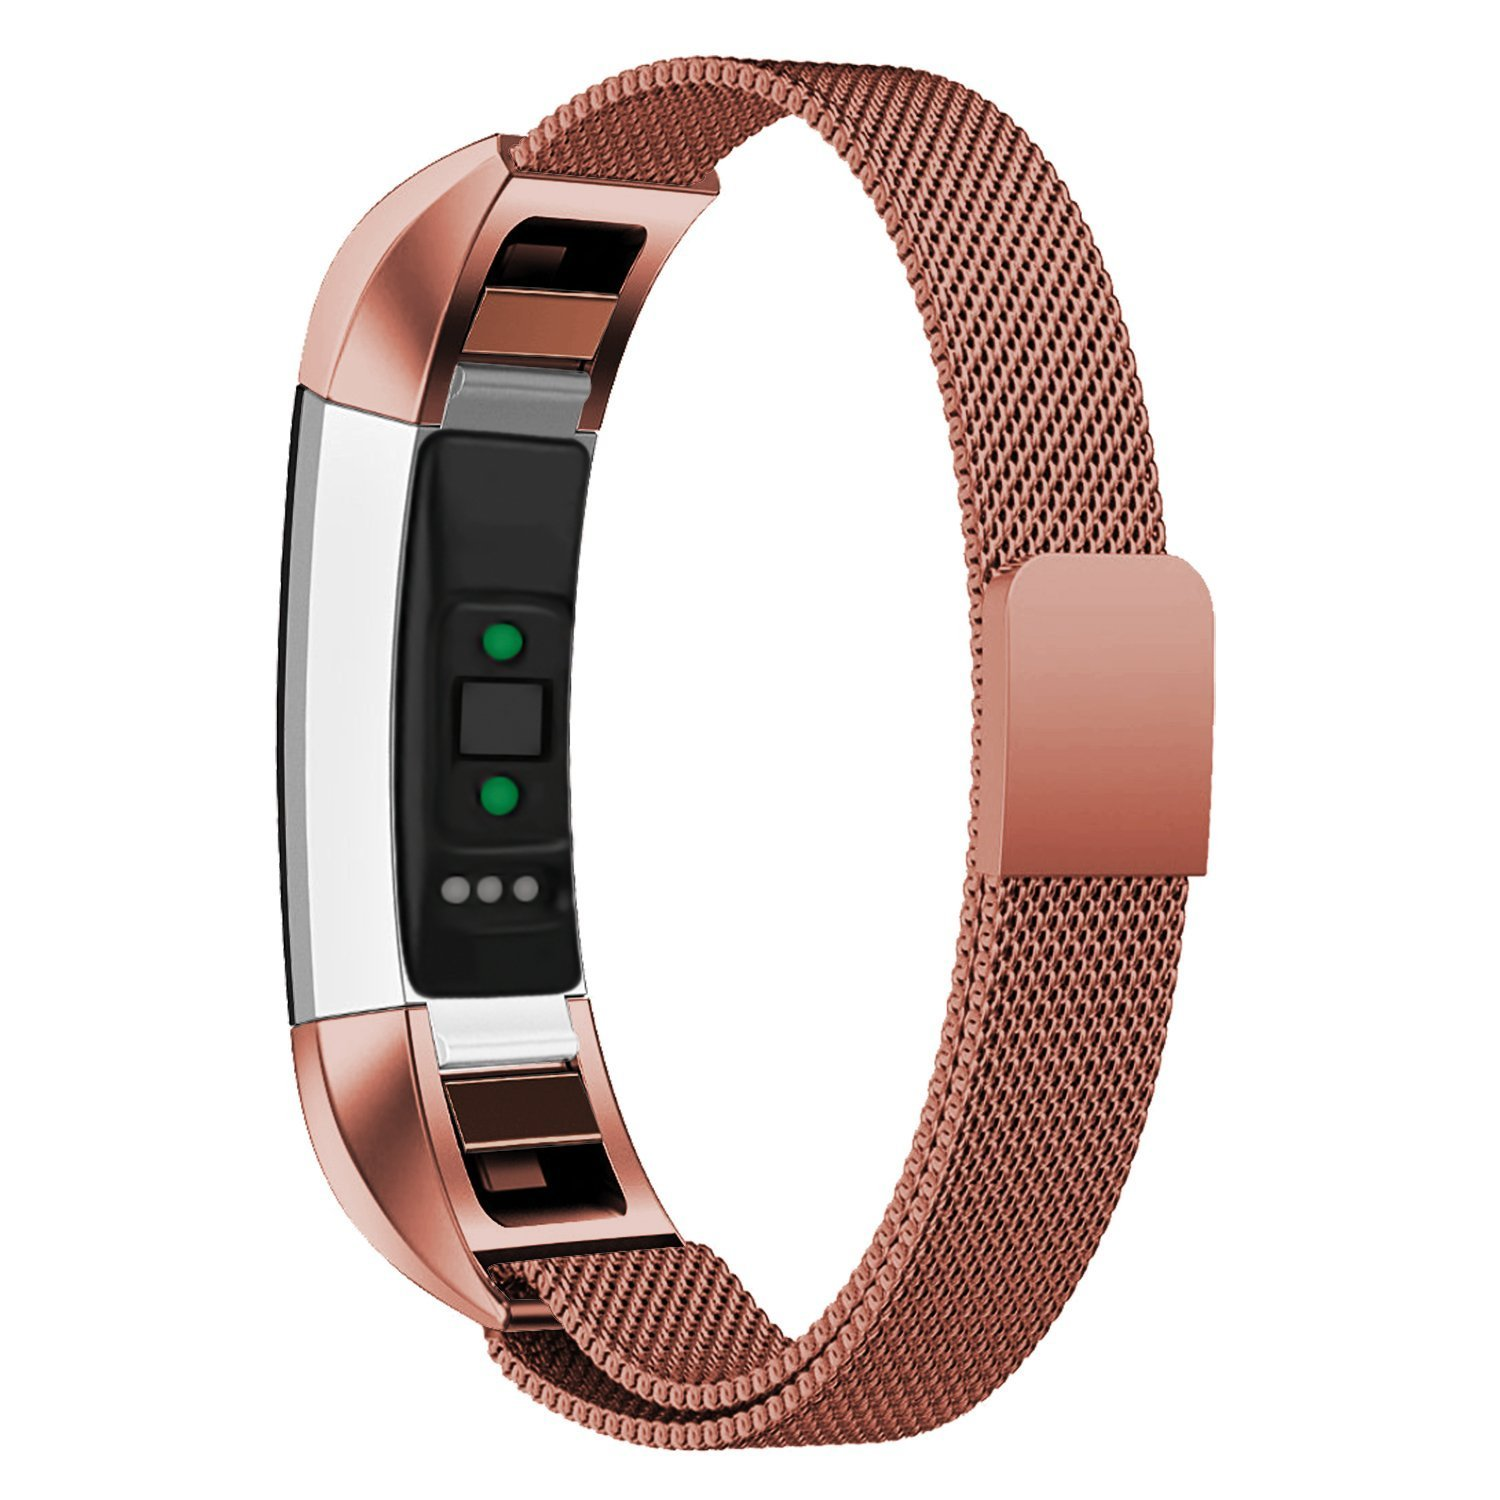 Fitbit Alta HR and Alta Bands,Milanese Loop Stainless Steel Metal Replacement Accessories Band for Fitbit Alta HR and Fitbit Alta 5.5-9 Inch Wrist Sliver Black Rose Gold Blue Pink Coffee Velospark